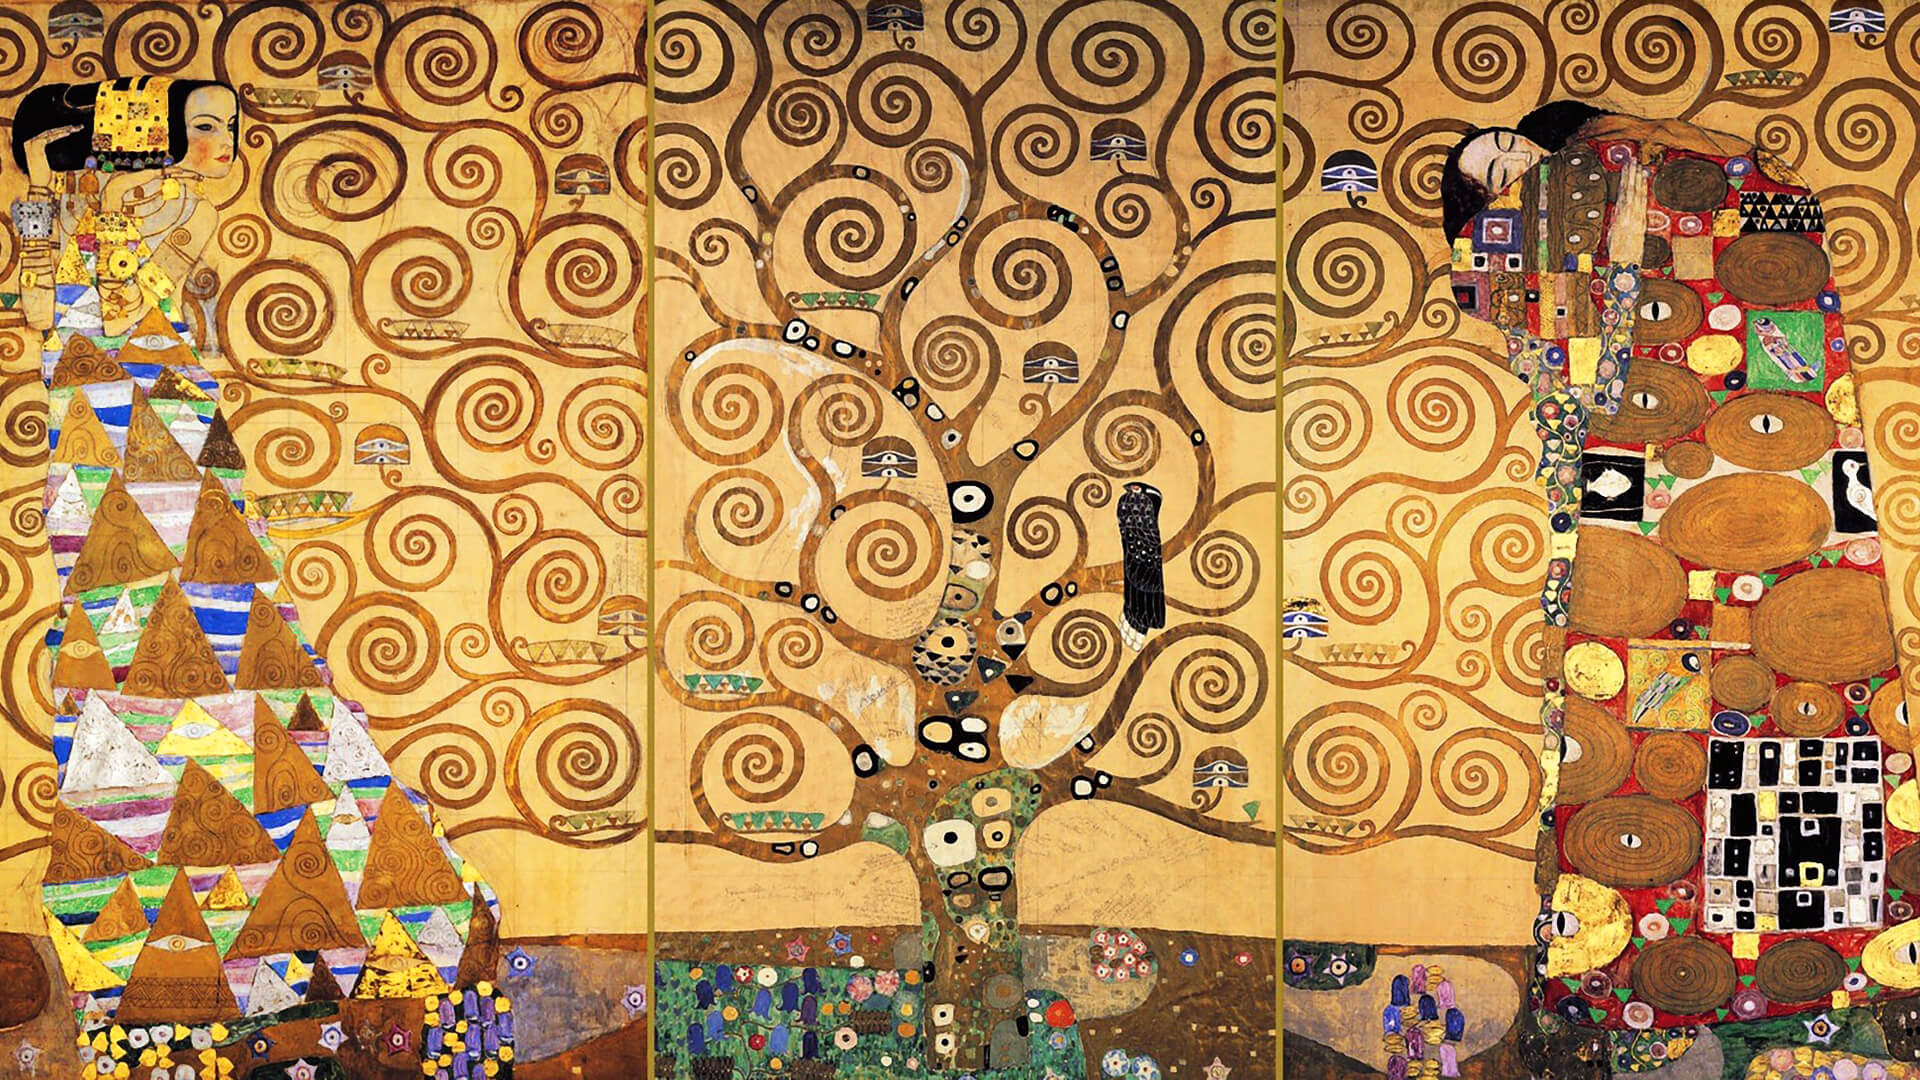 Gustav Klimt-The Tree of Life_1920x1080